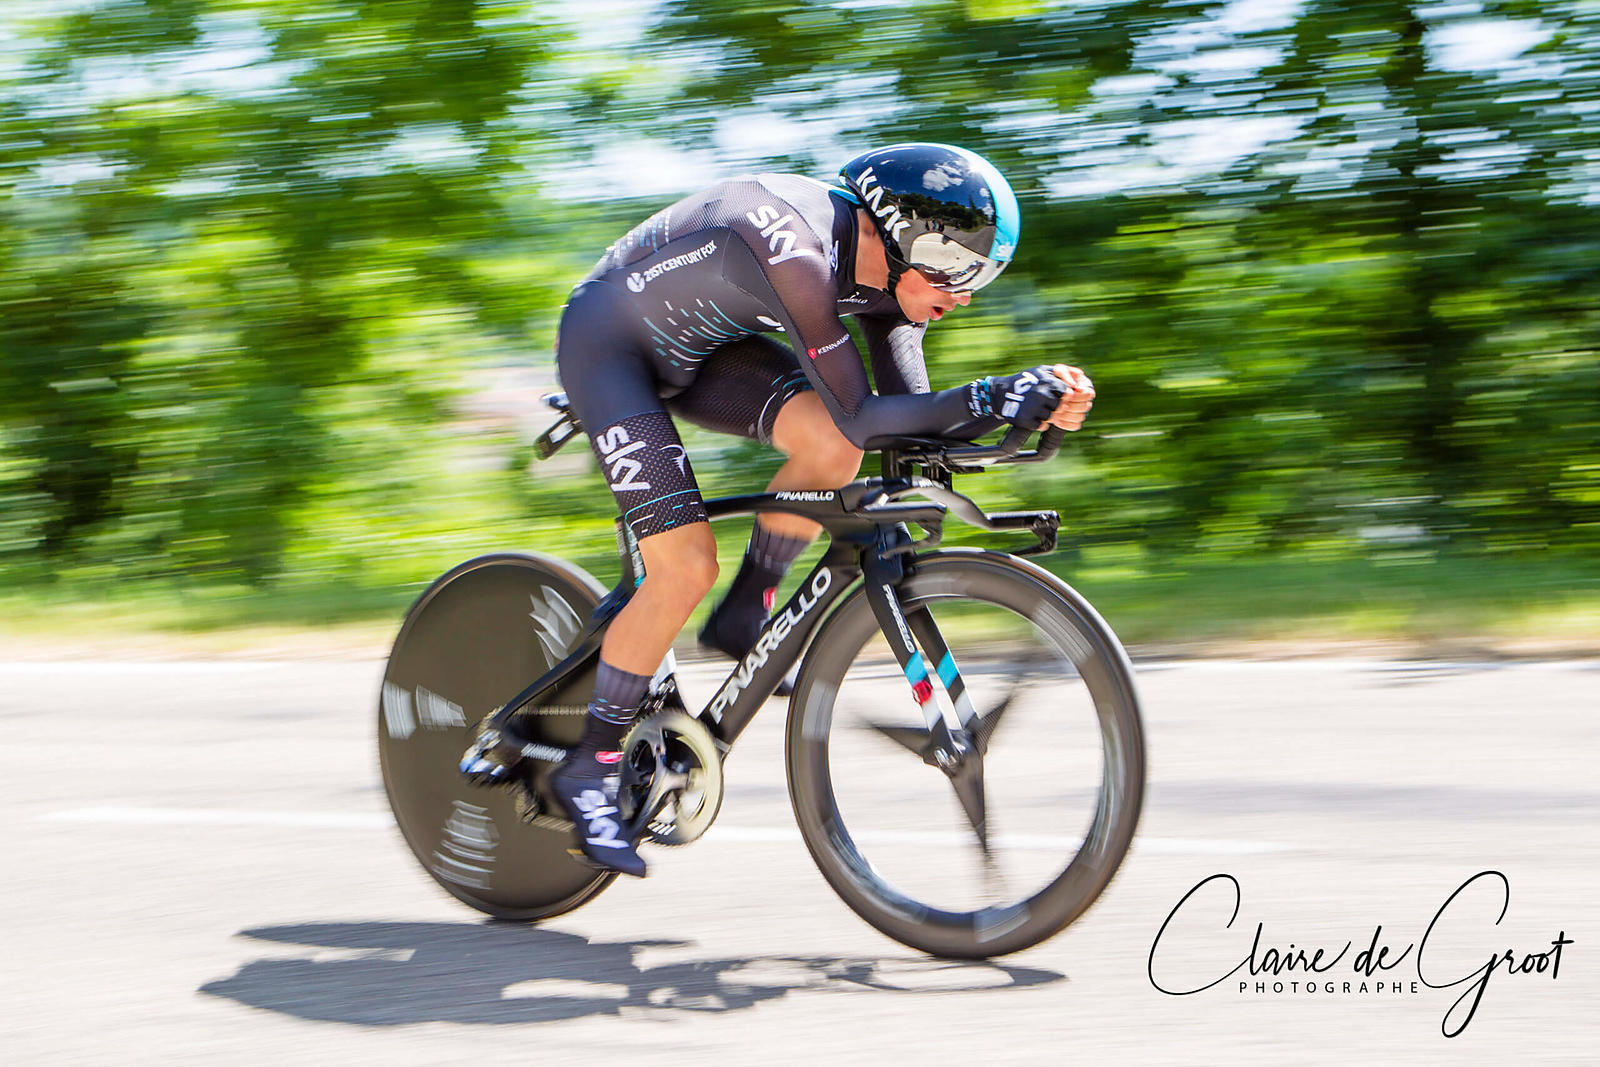 Peter Kennaugh from Team Sky in the 2017 Criterium du Dauphiné time trial